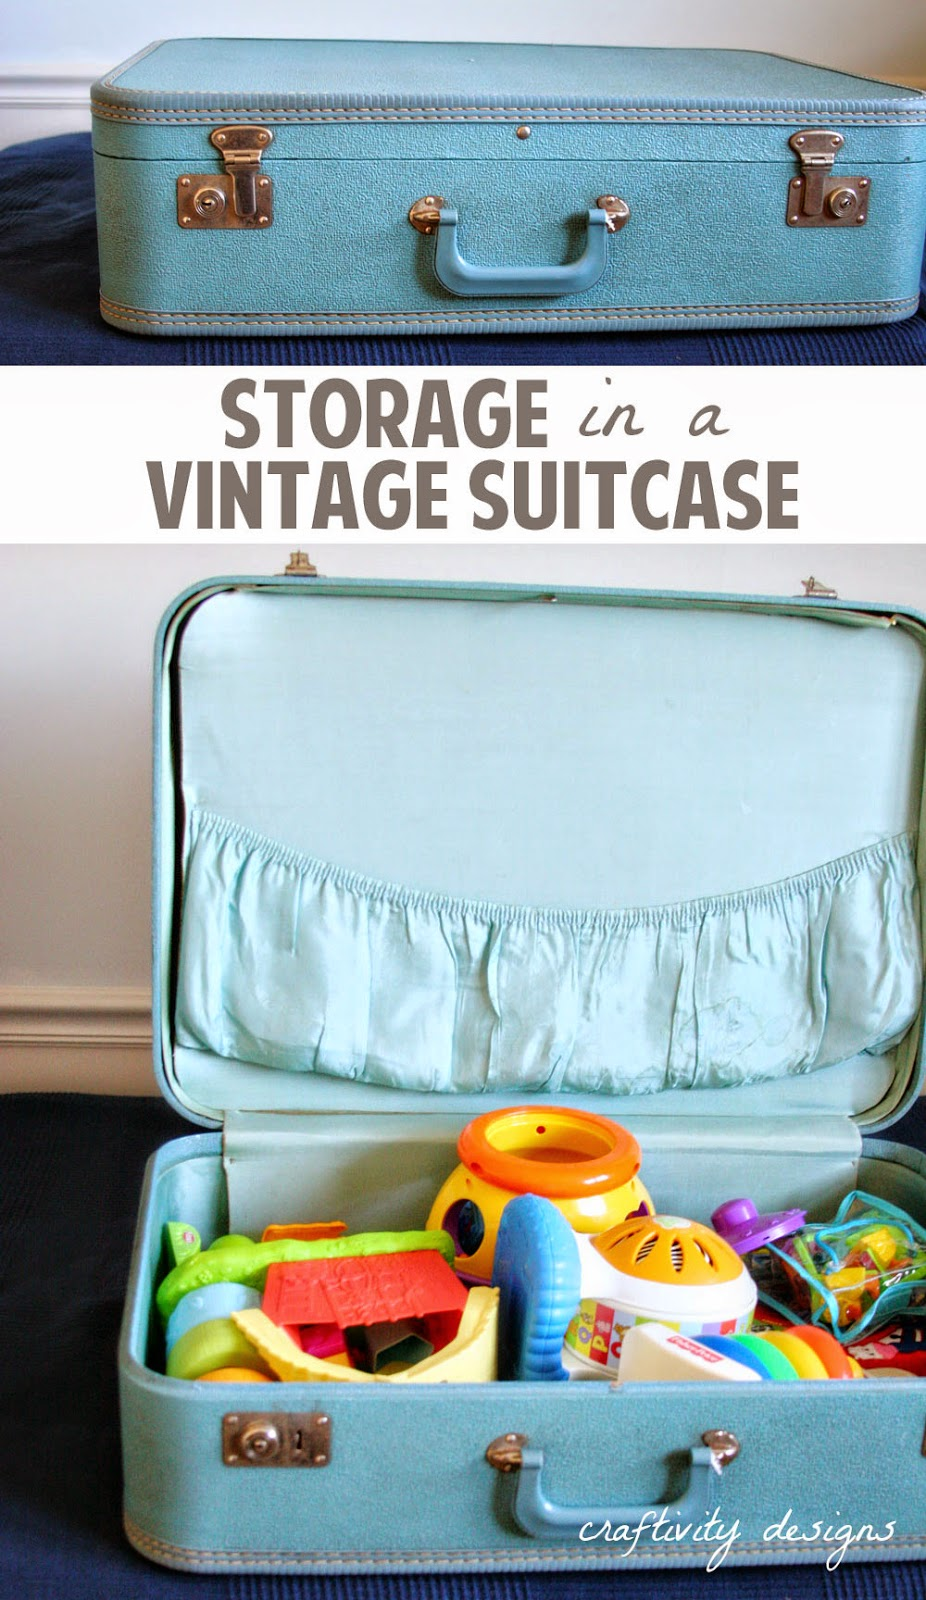 under-bed-storage-vintage-suitcase-title